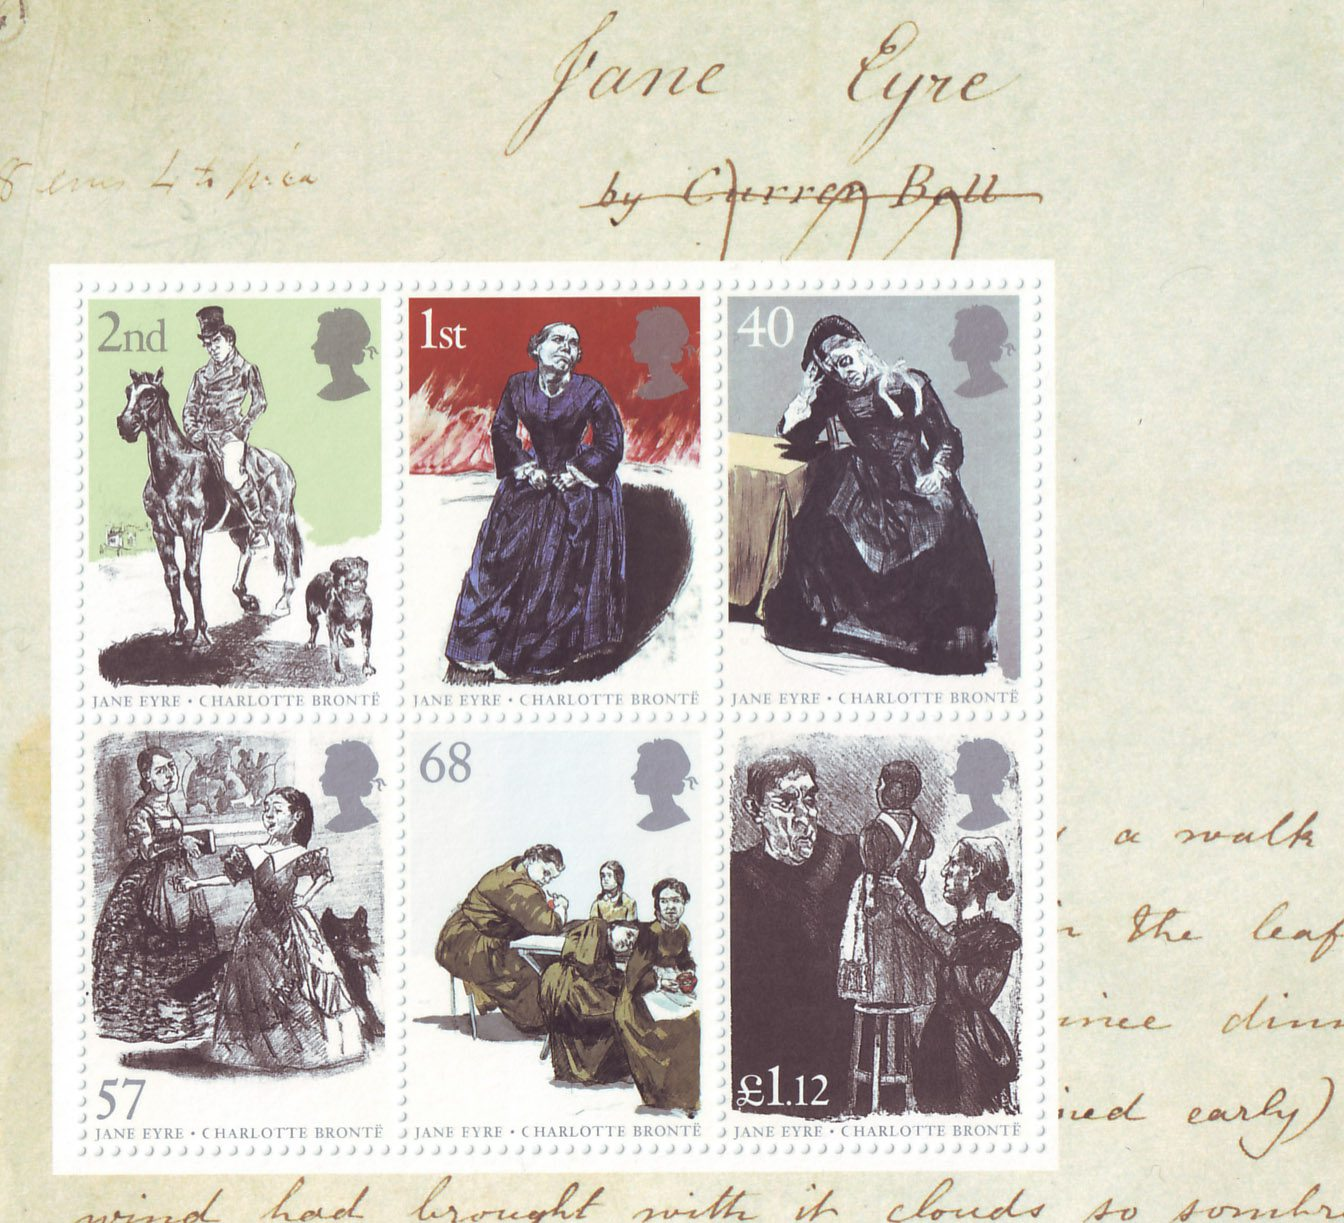 Miniature sheet with 6 stamps depicting characters from the novel Jane Eyre.